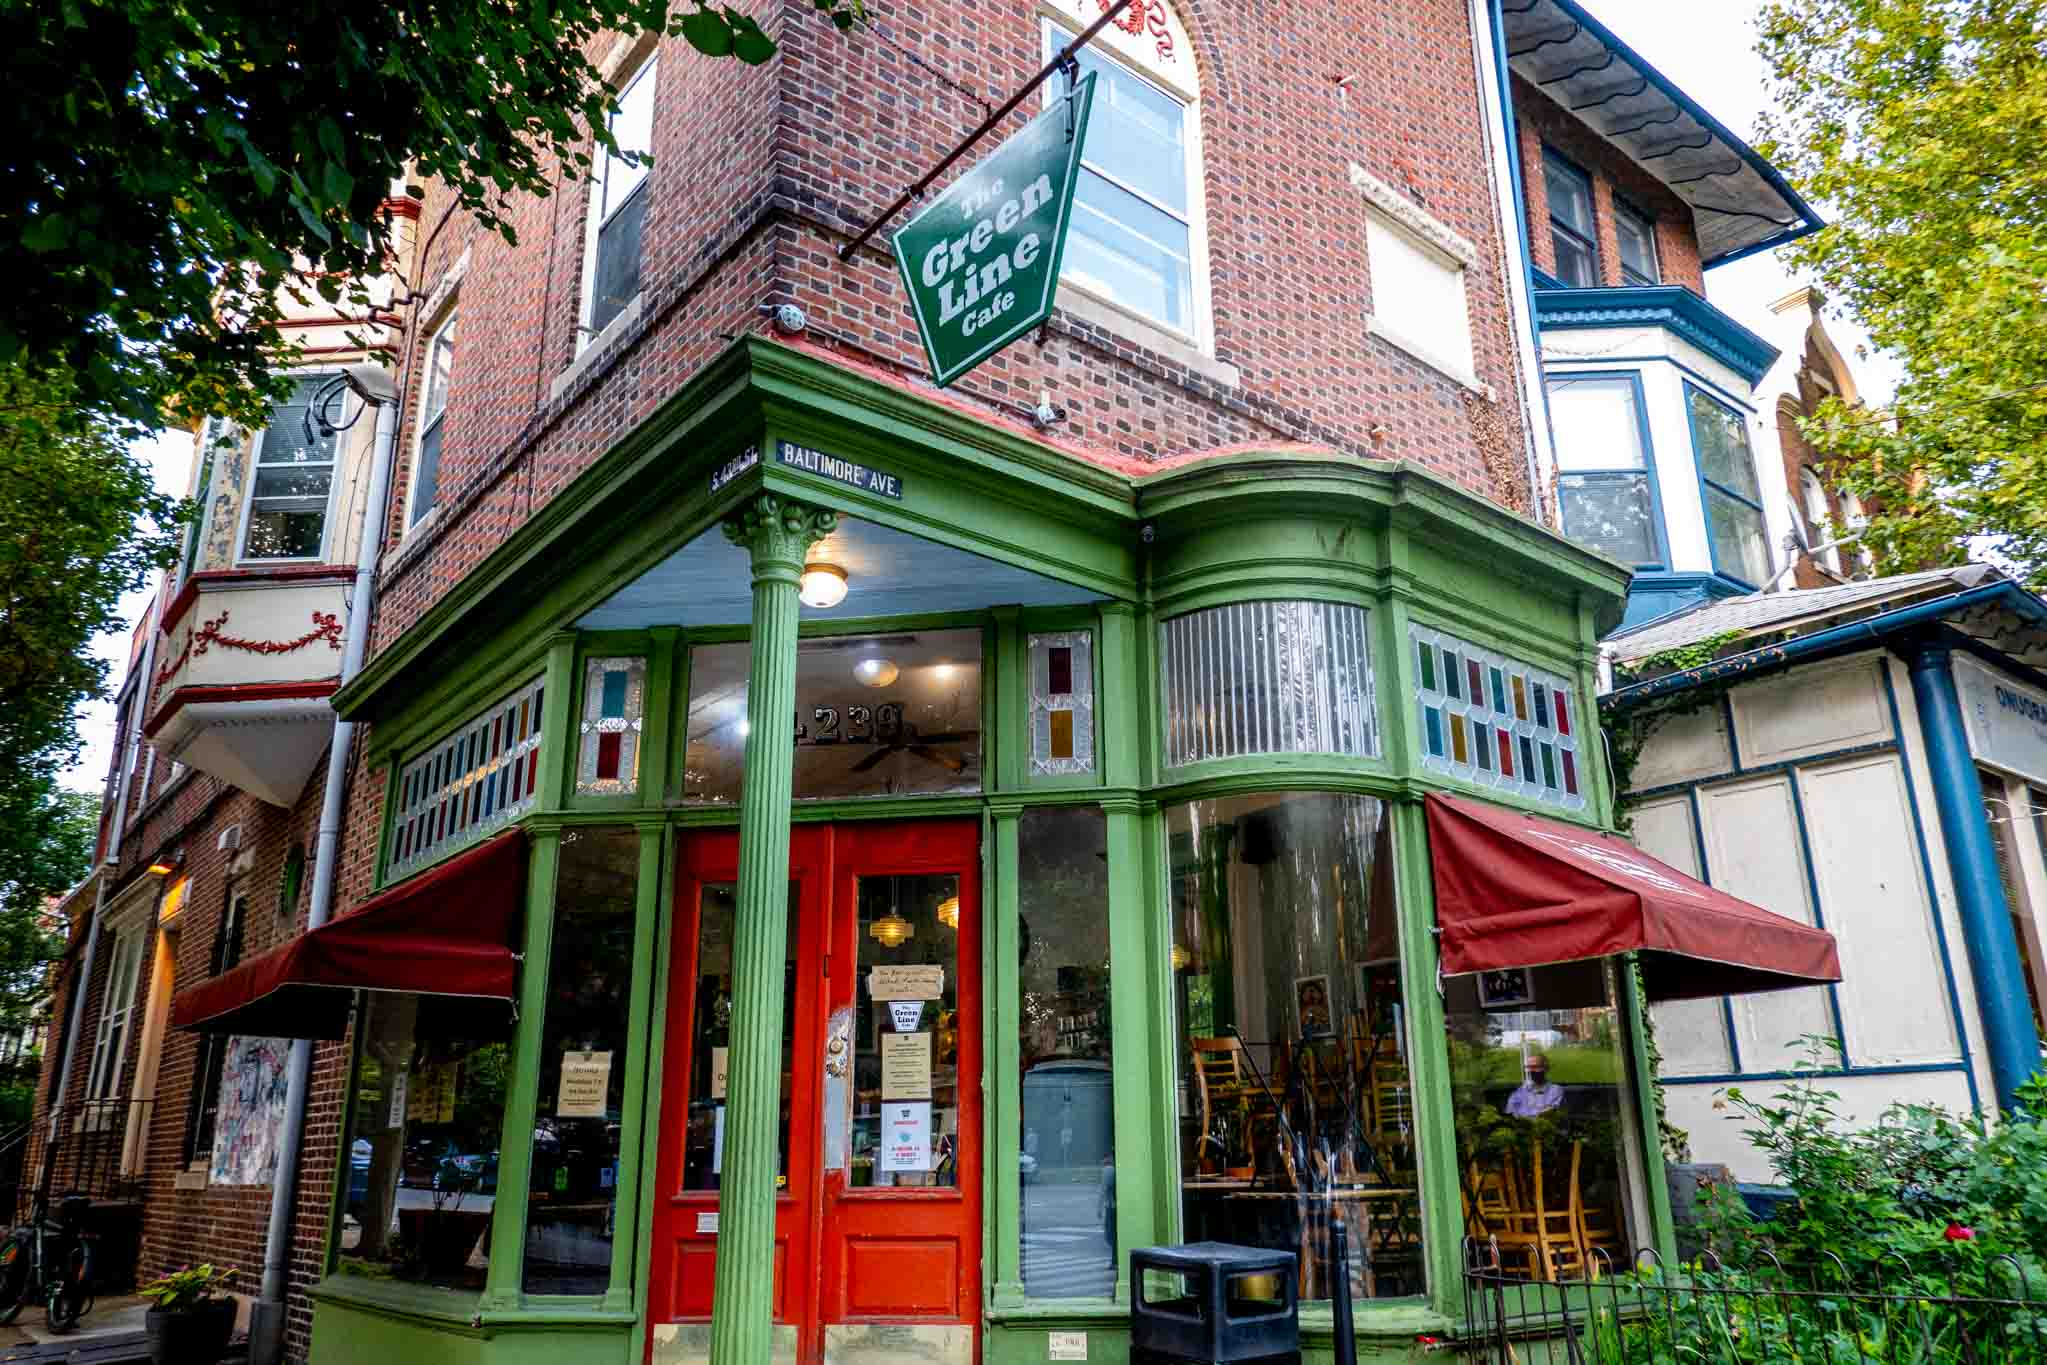 """Exterior of a cafe painted red and green with a sign for """"The Green Line Cafe"""""""